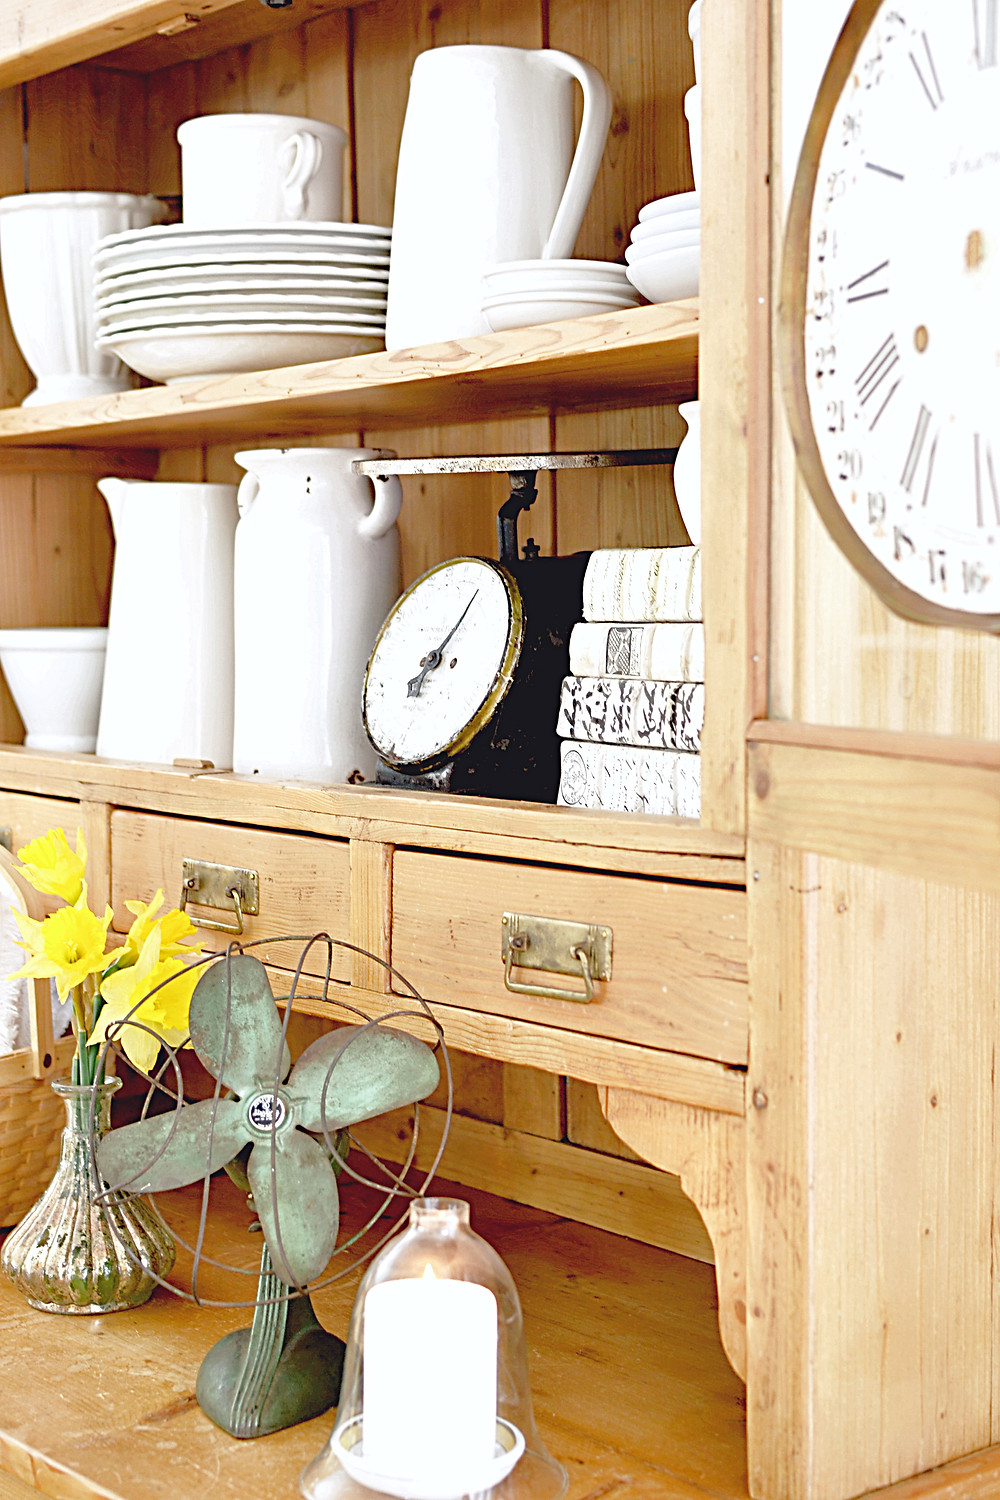 White pottery in wooden vintage hutch with vintage clock, scale, fan, candle and basket.